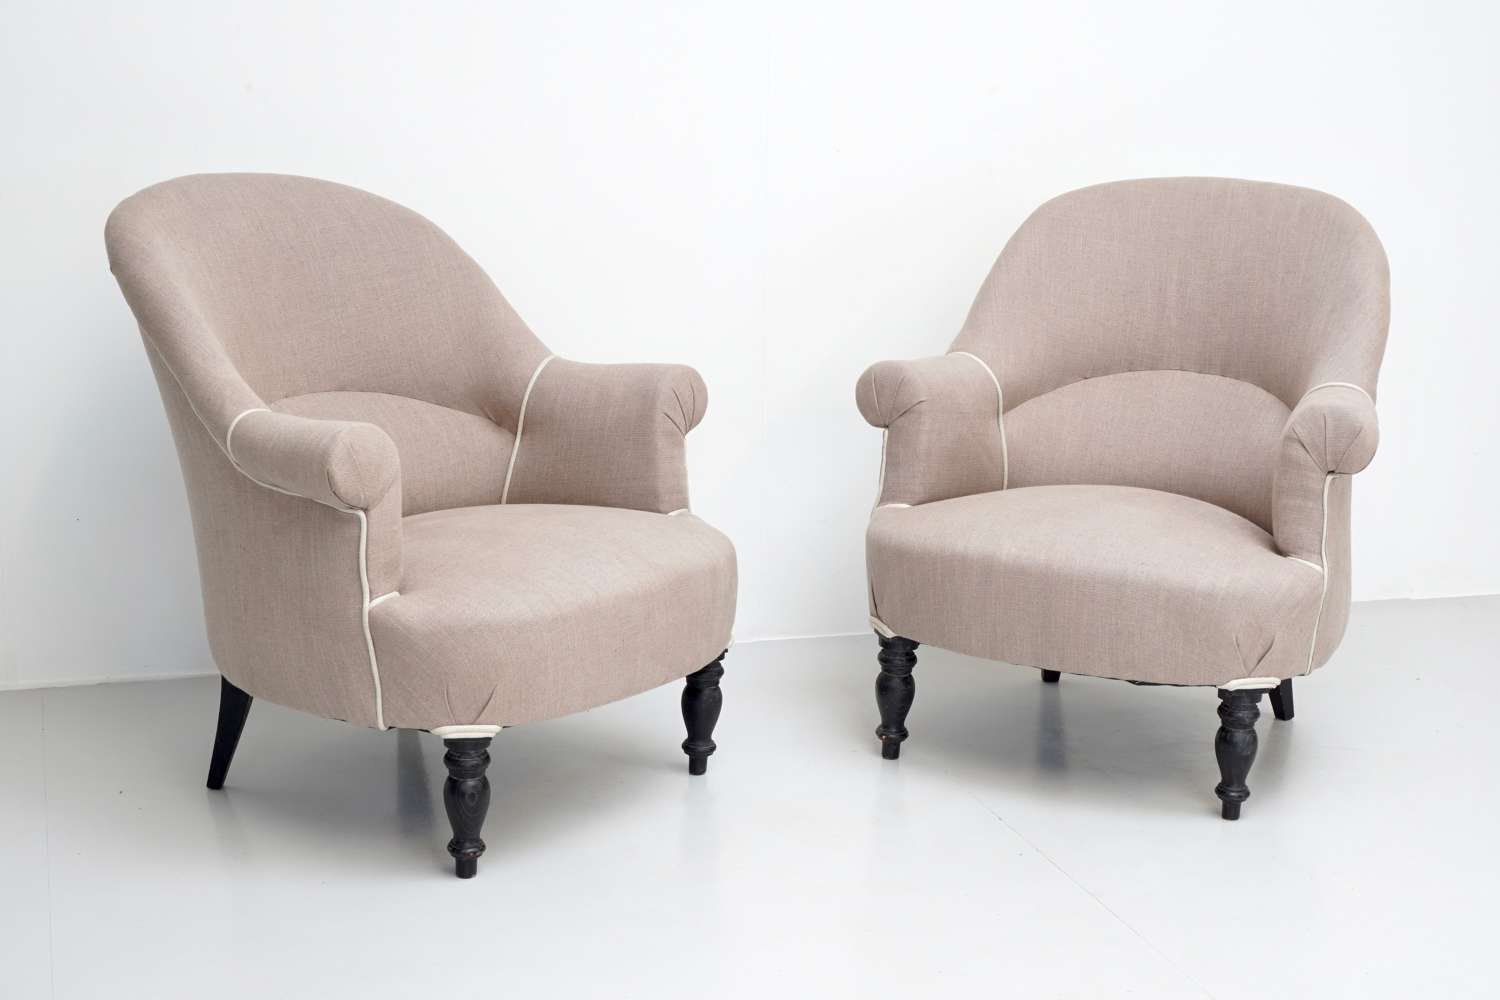 Pair of French Upholstered Chairs